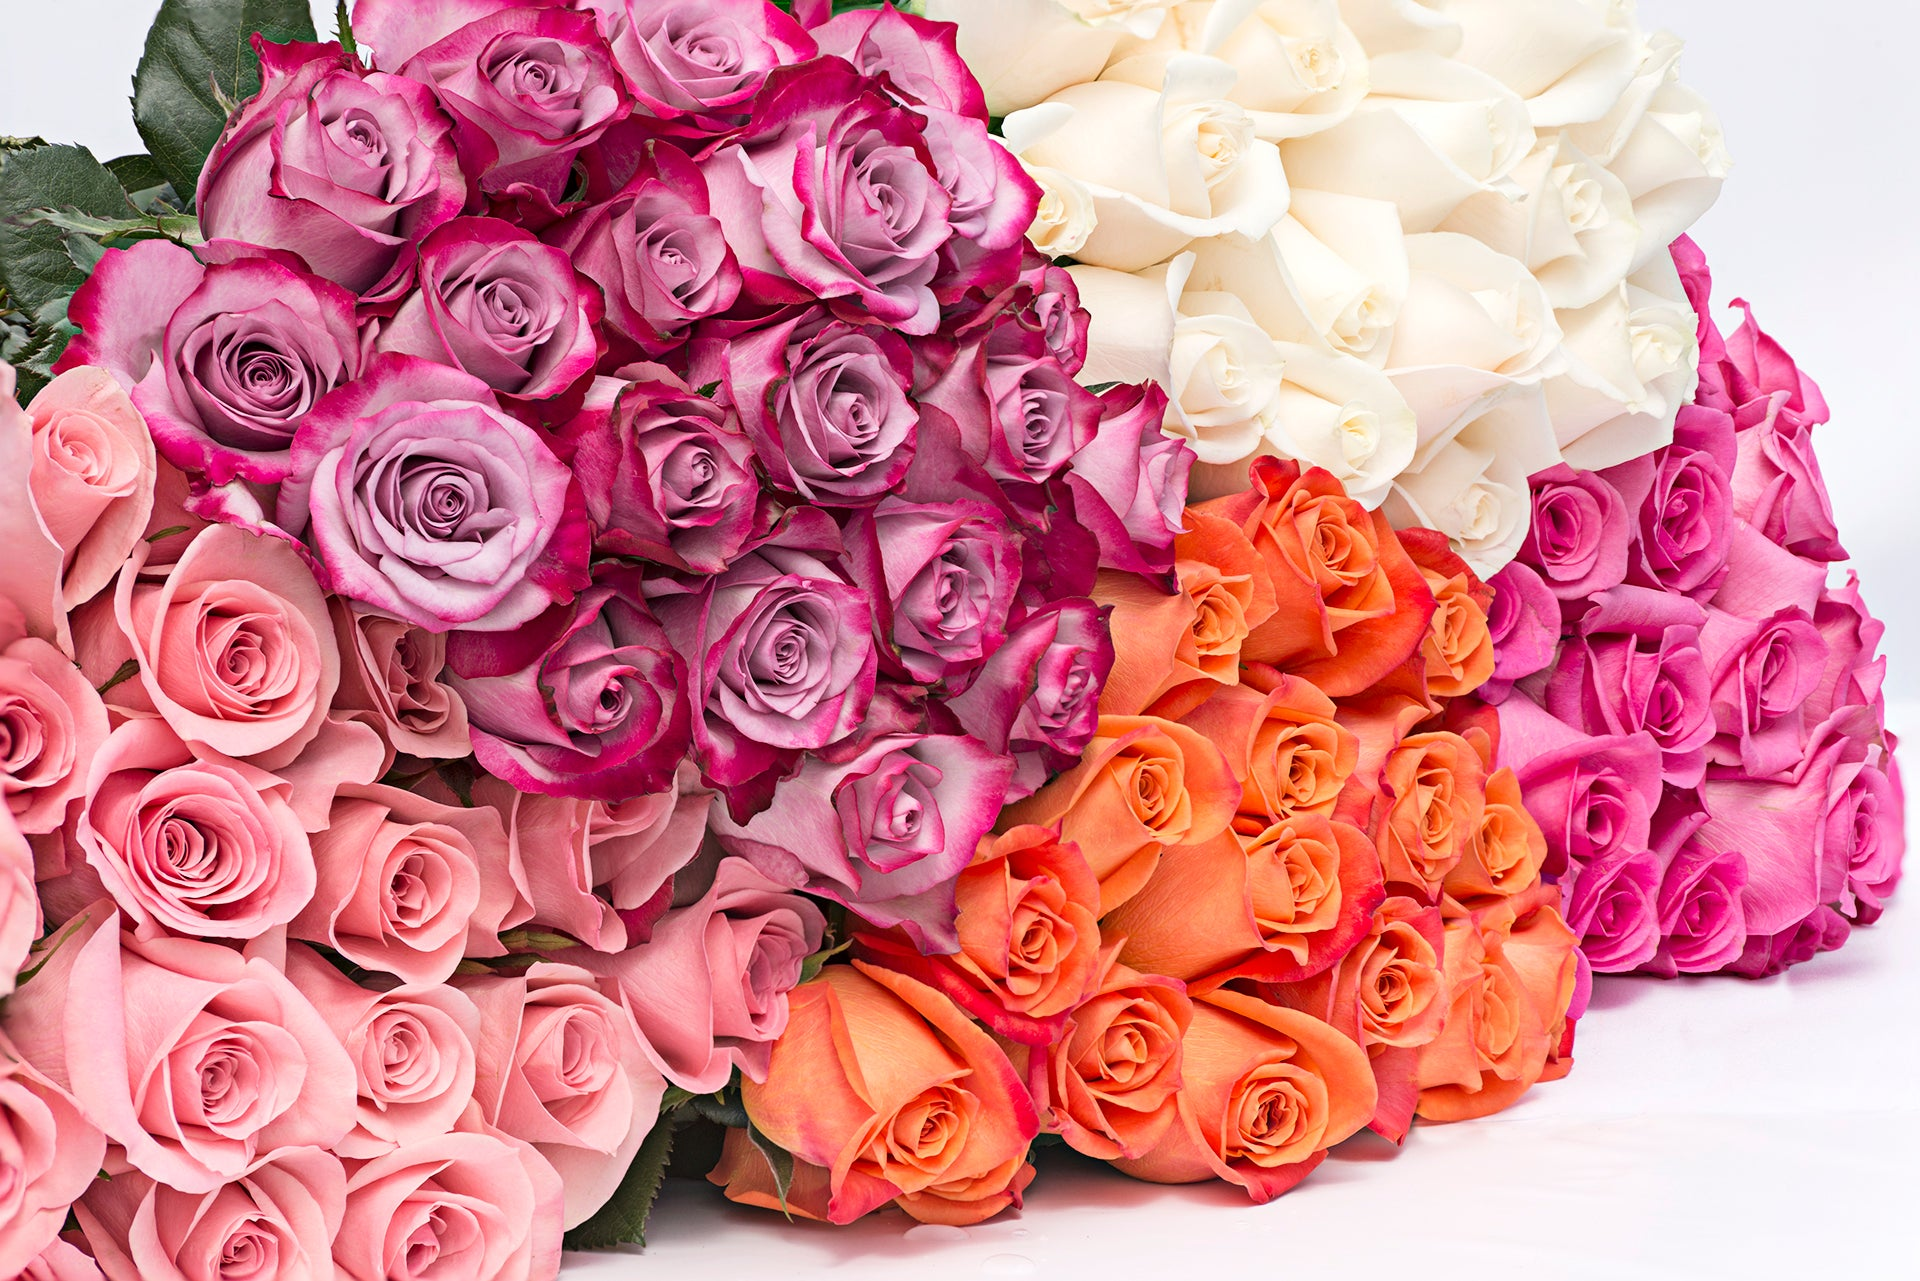 Assorted color roses. This fresh cut wholesale flowers are known for being the flower of love. Excellent choice for weddings; they are a great addition to your home and your office. When words are not enough, this beautiful flowers will be an unmistakable message.